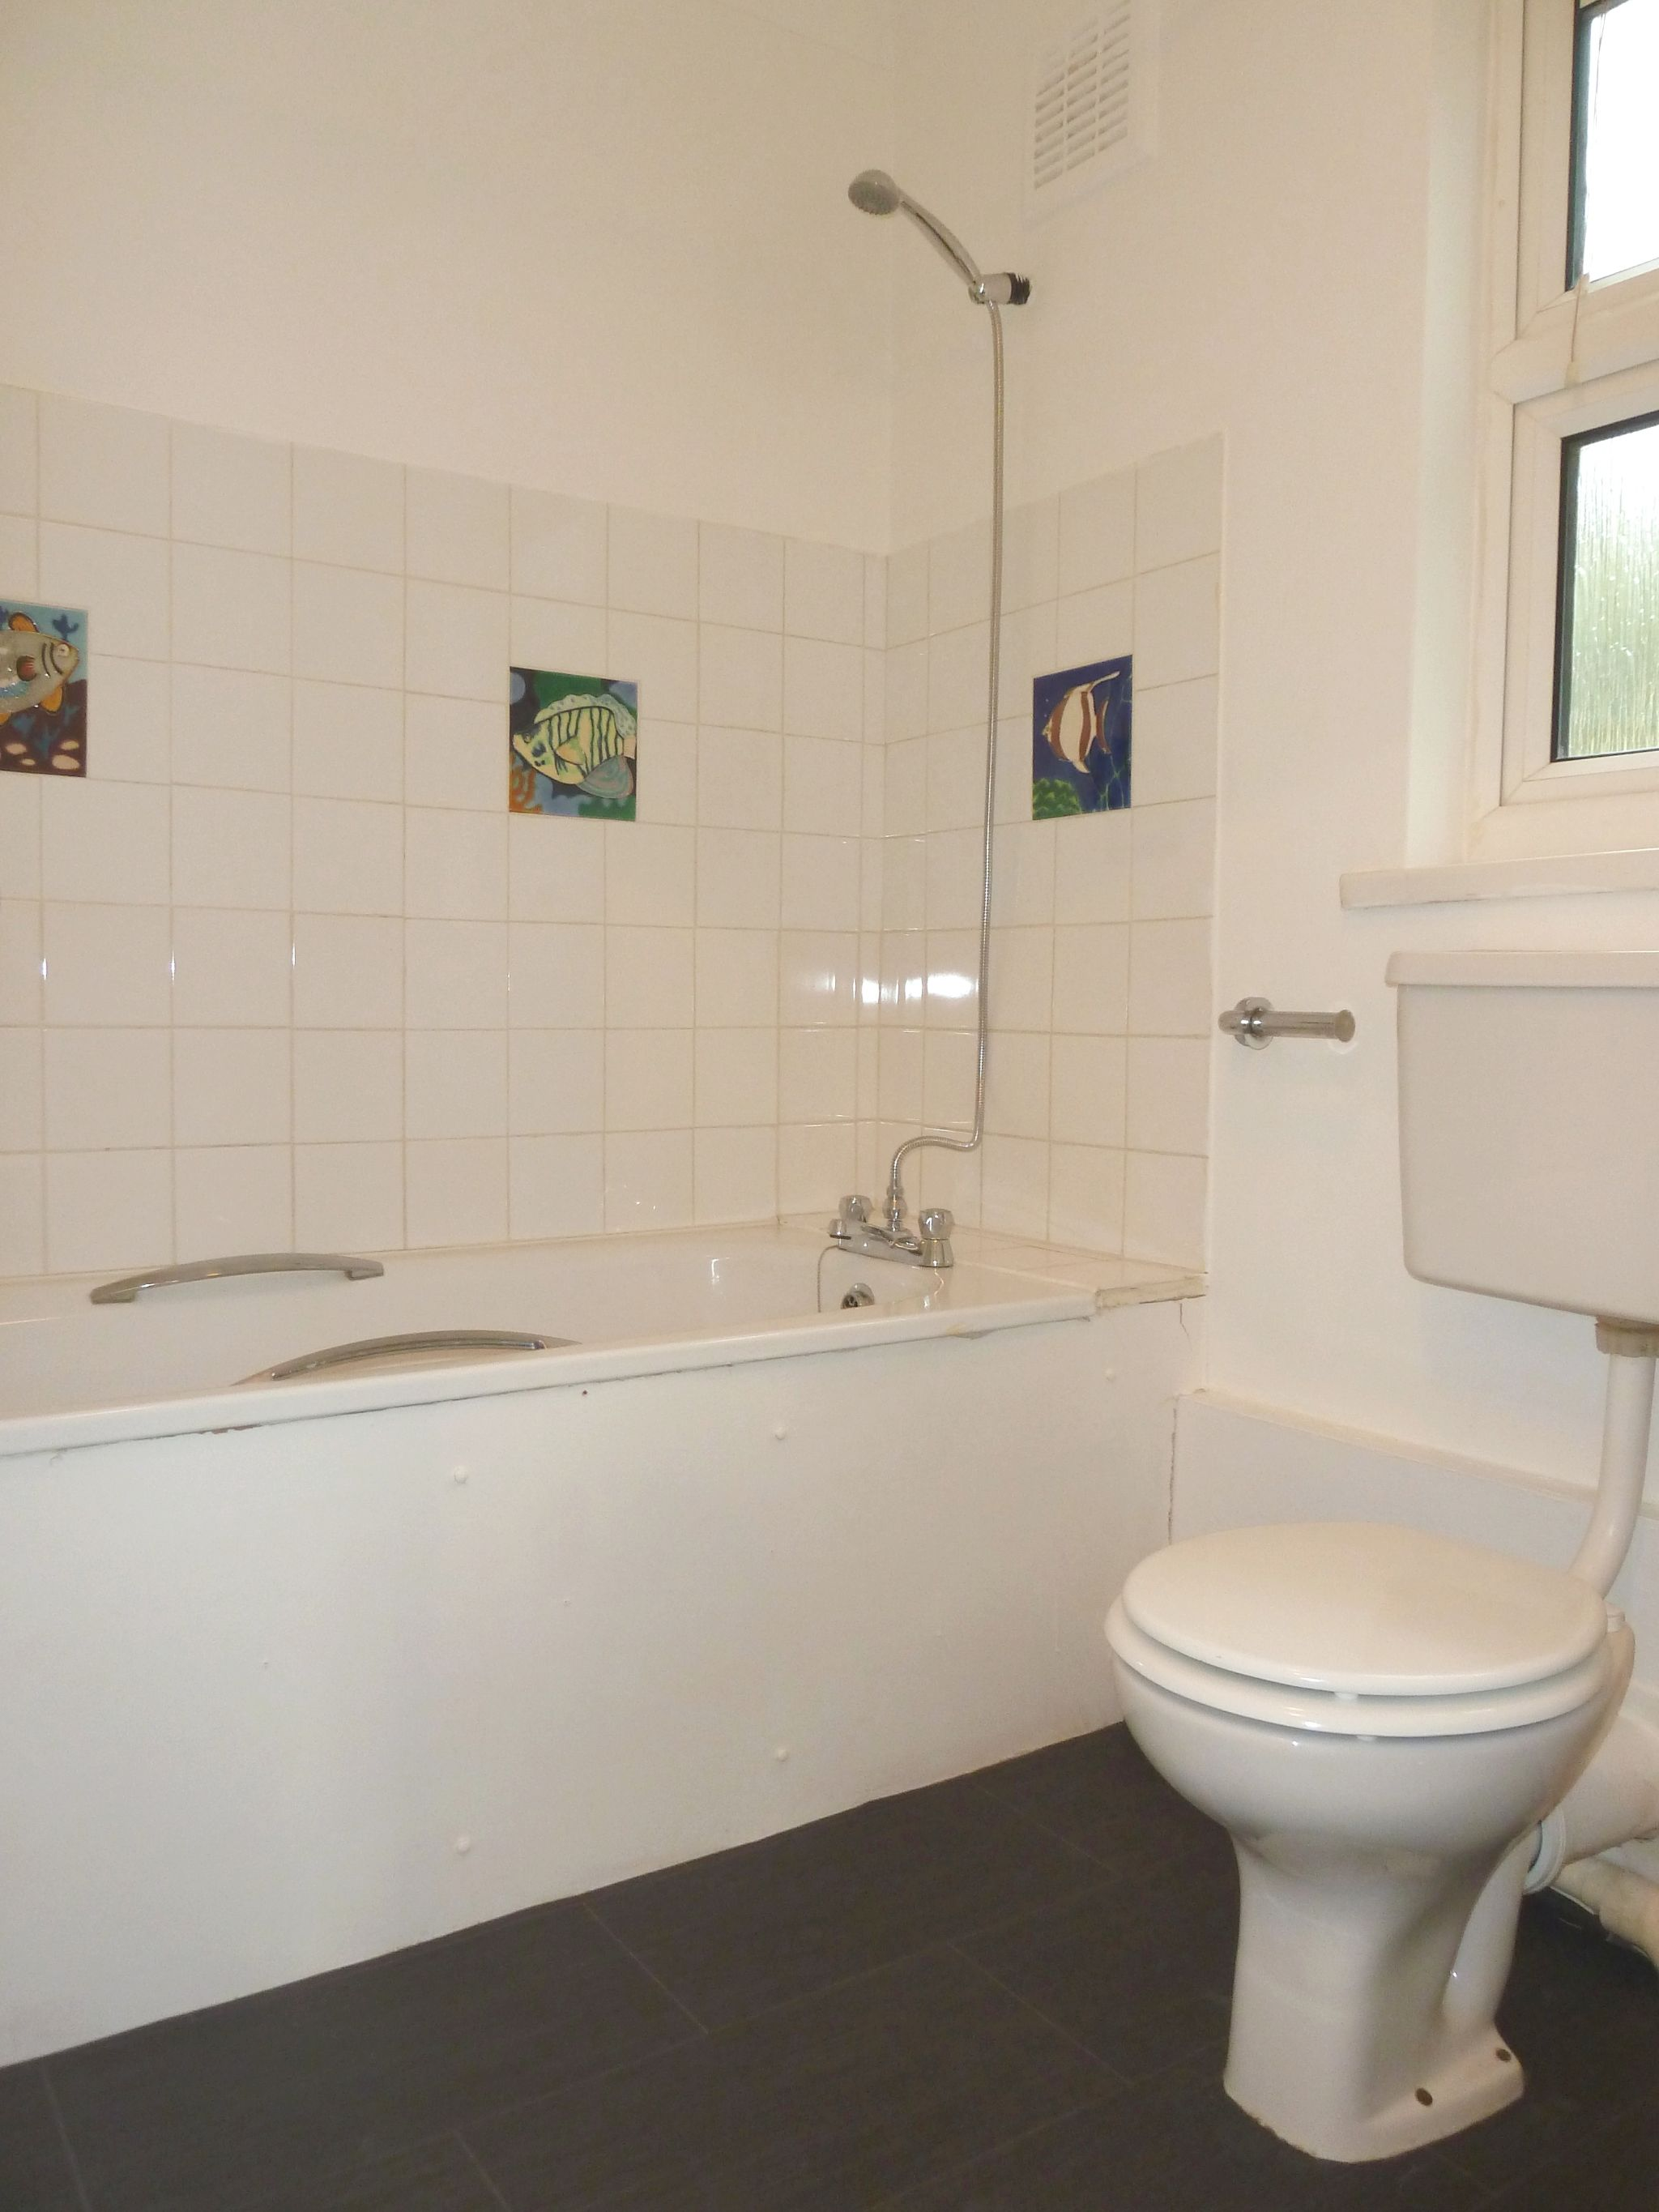 1 bedroom flat flat/apartment To Let in London - Bathroom with Shower